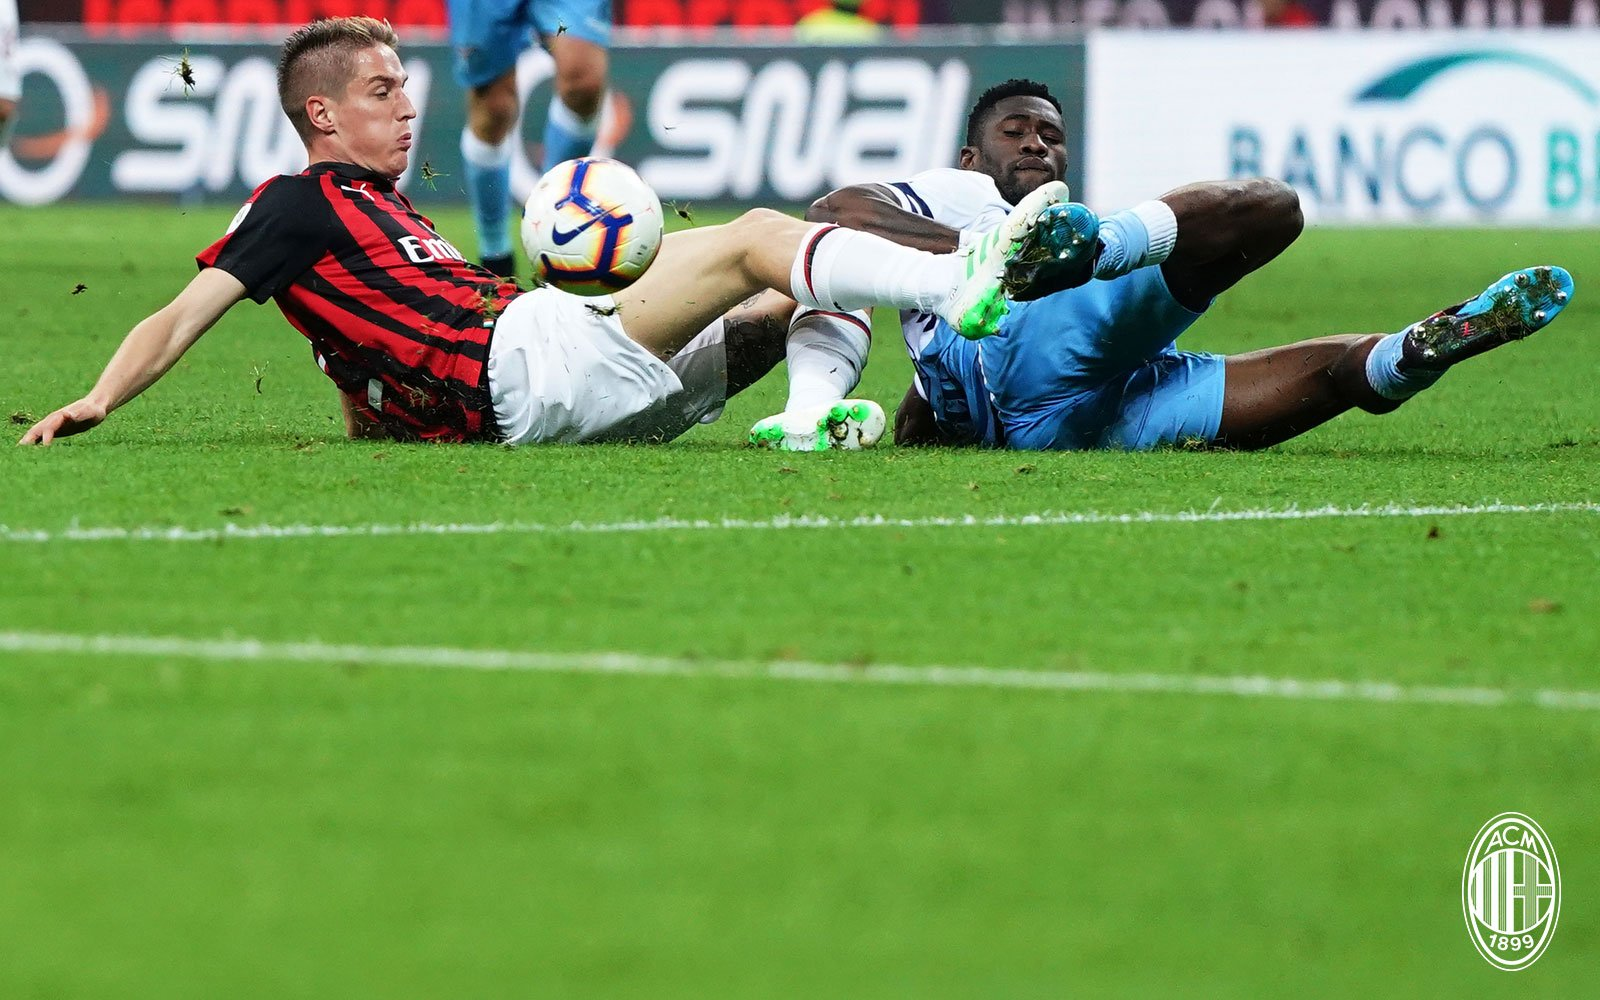 Andrea Conti and Bastos during Milan-Lazio at Stadio San Siro on April 24, 2019. (@acmilan.com)